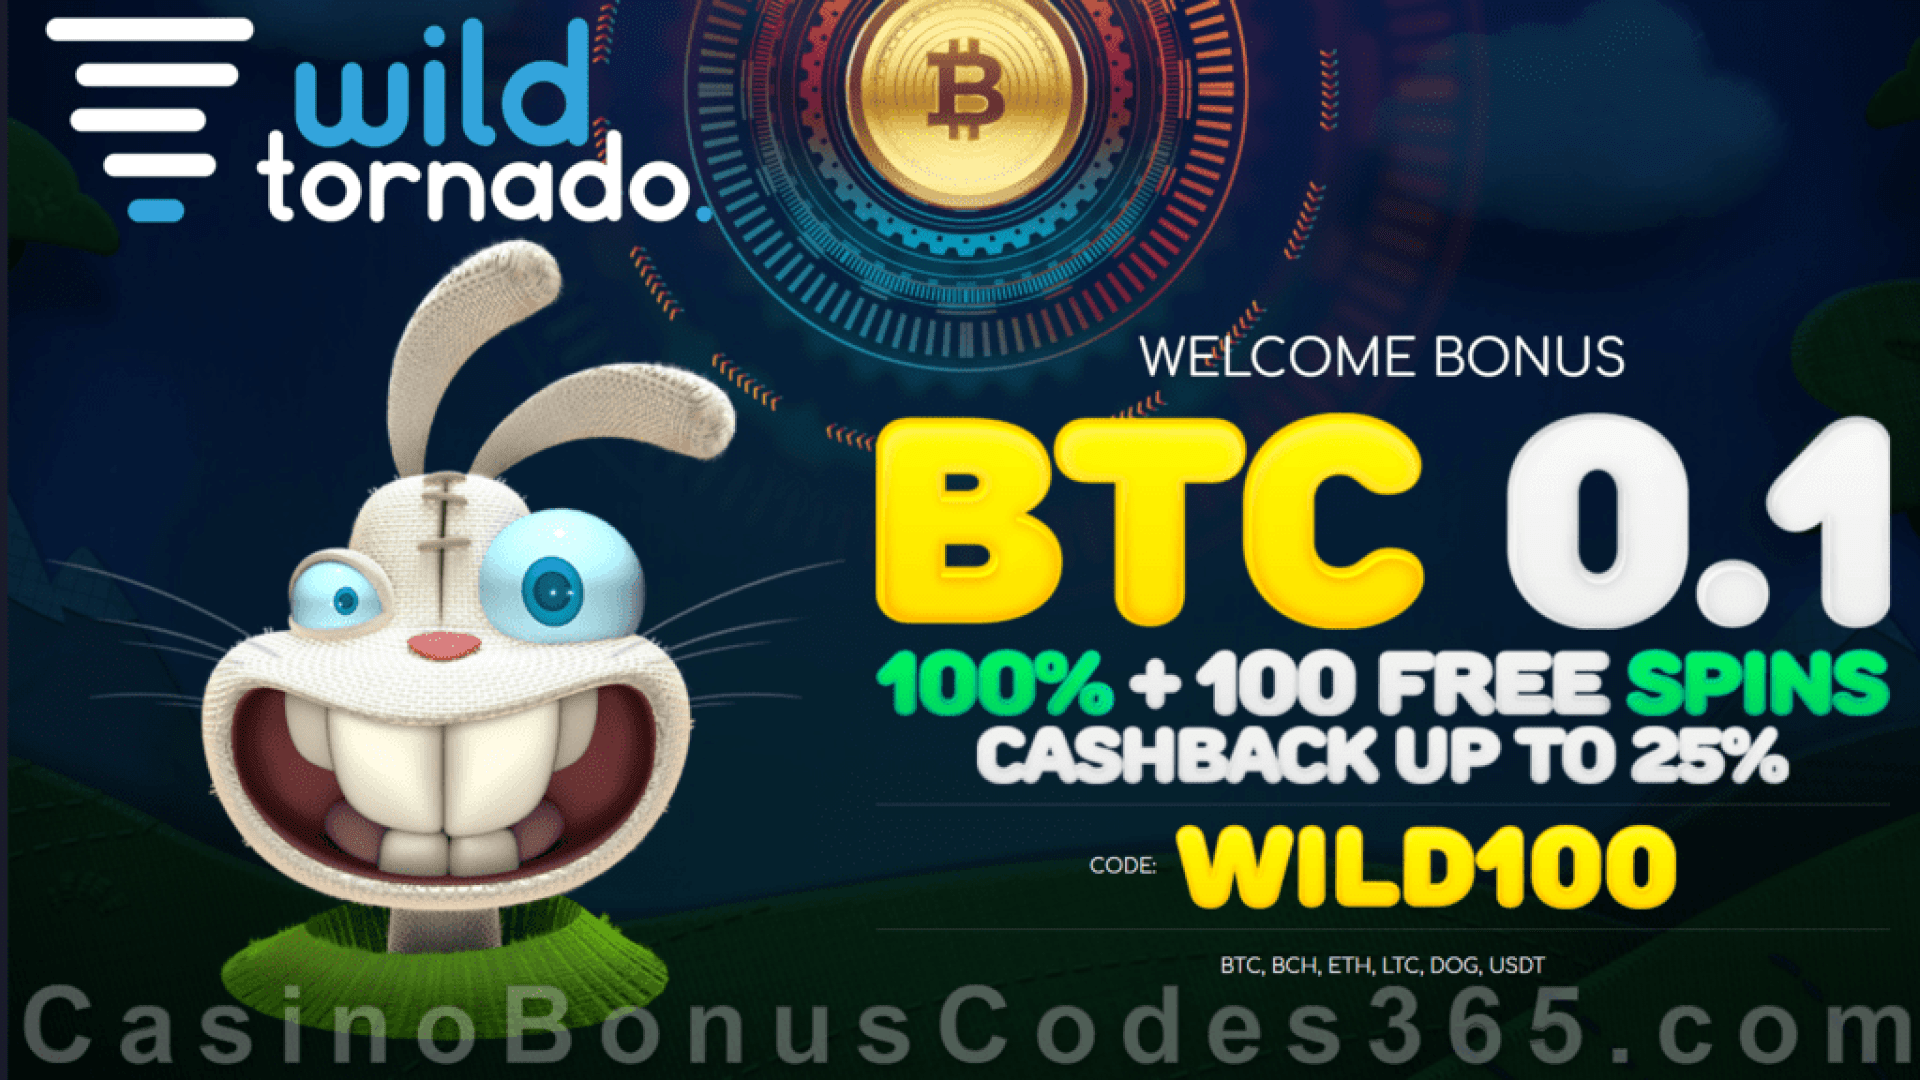 WildTornado Casino 100% Match Bonus up to 100 mBTC plus 100 FREE Spins on top Welcome Deal